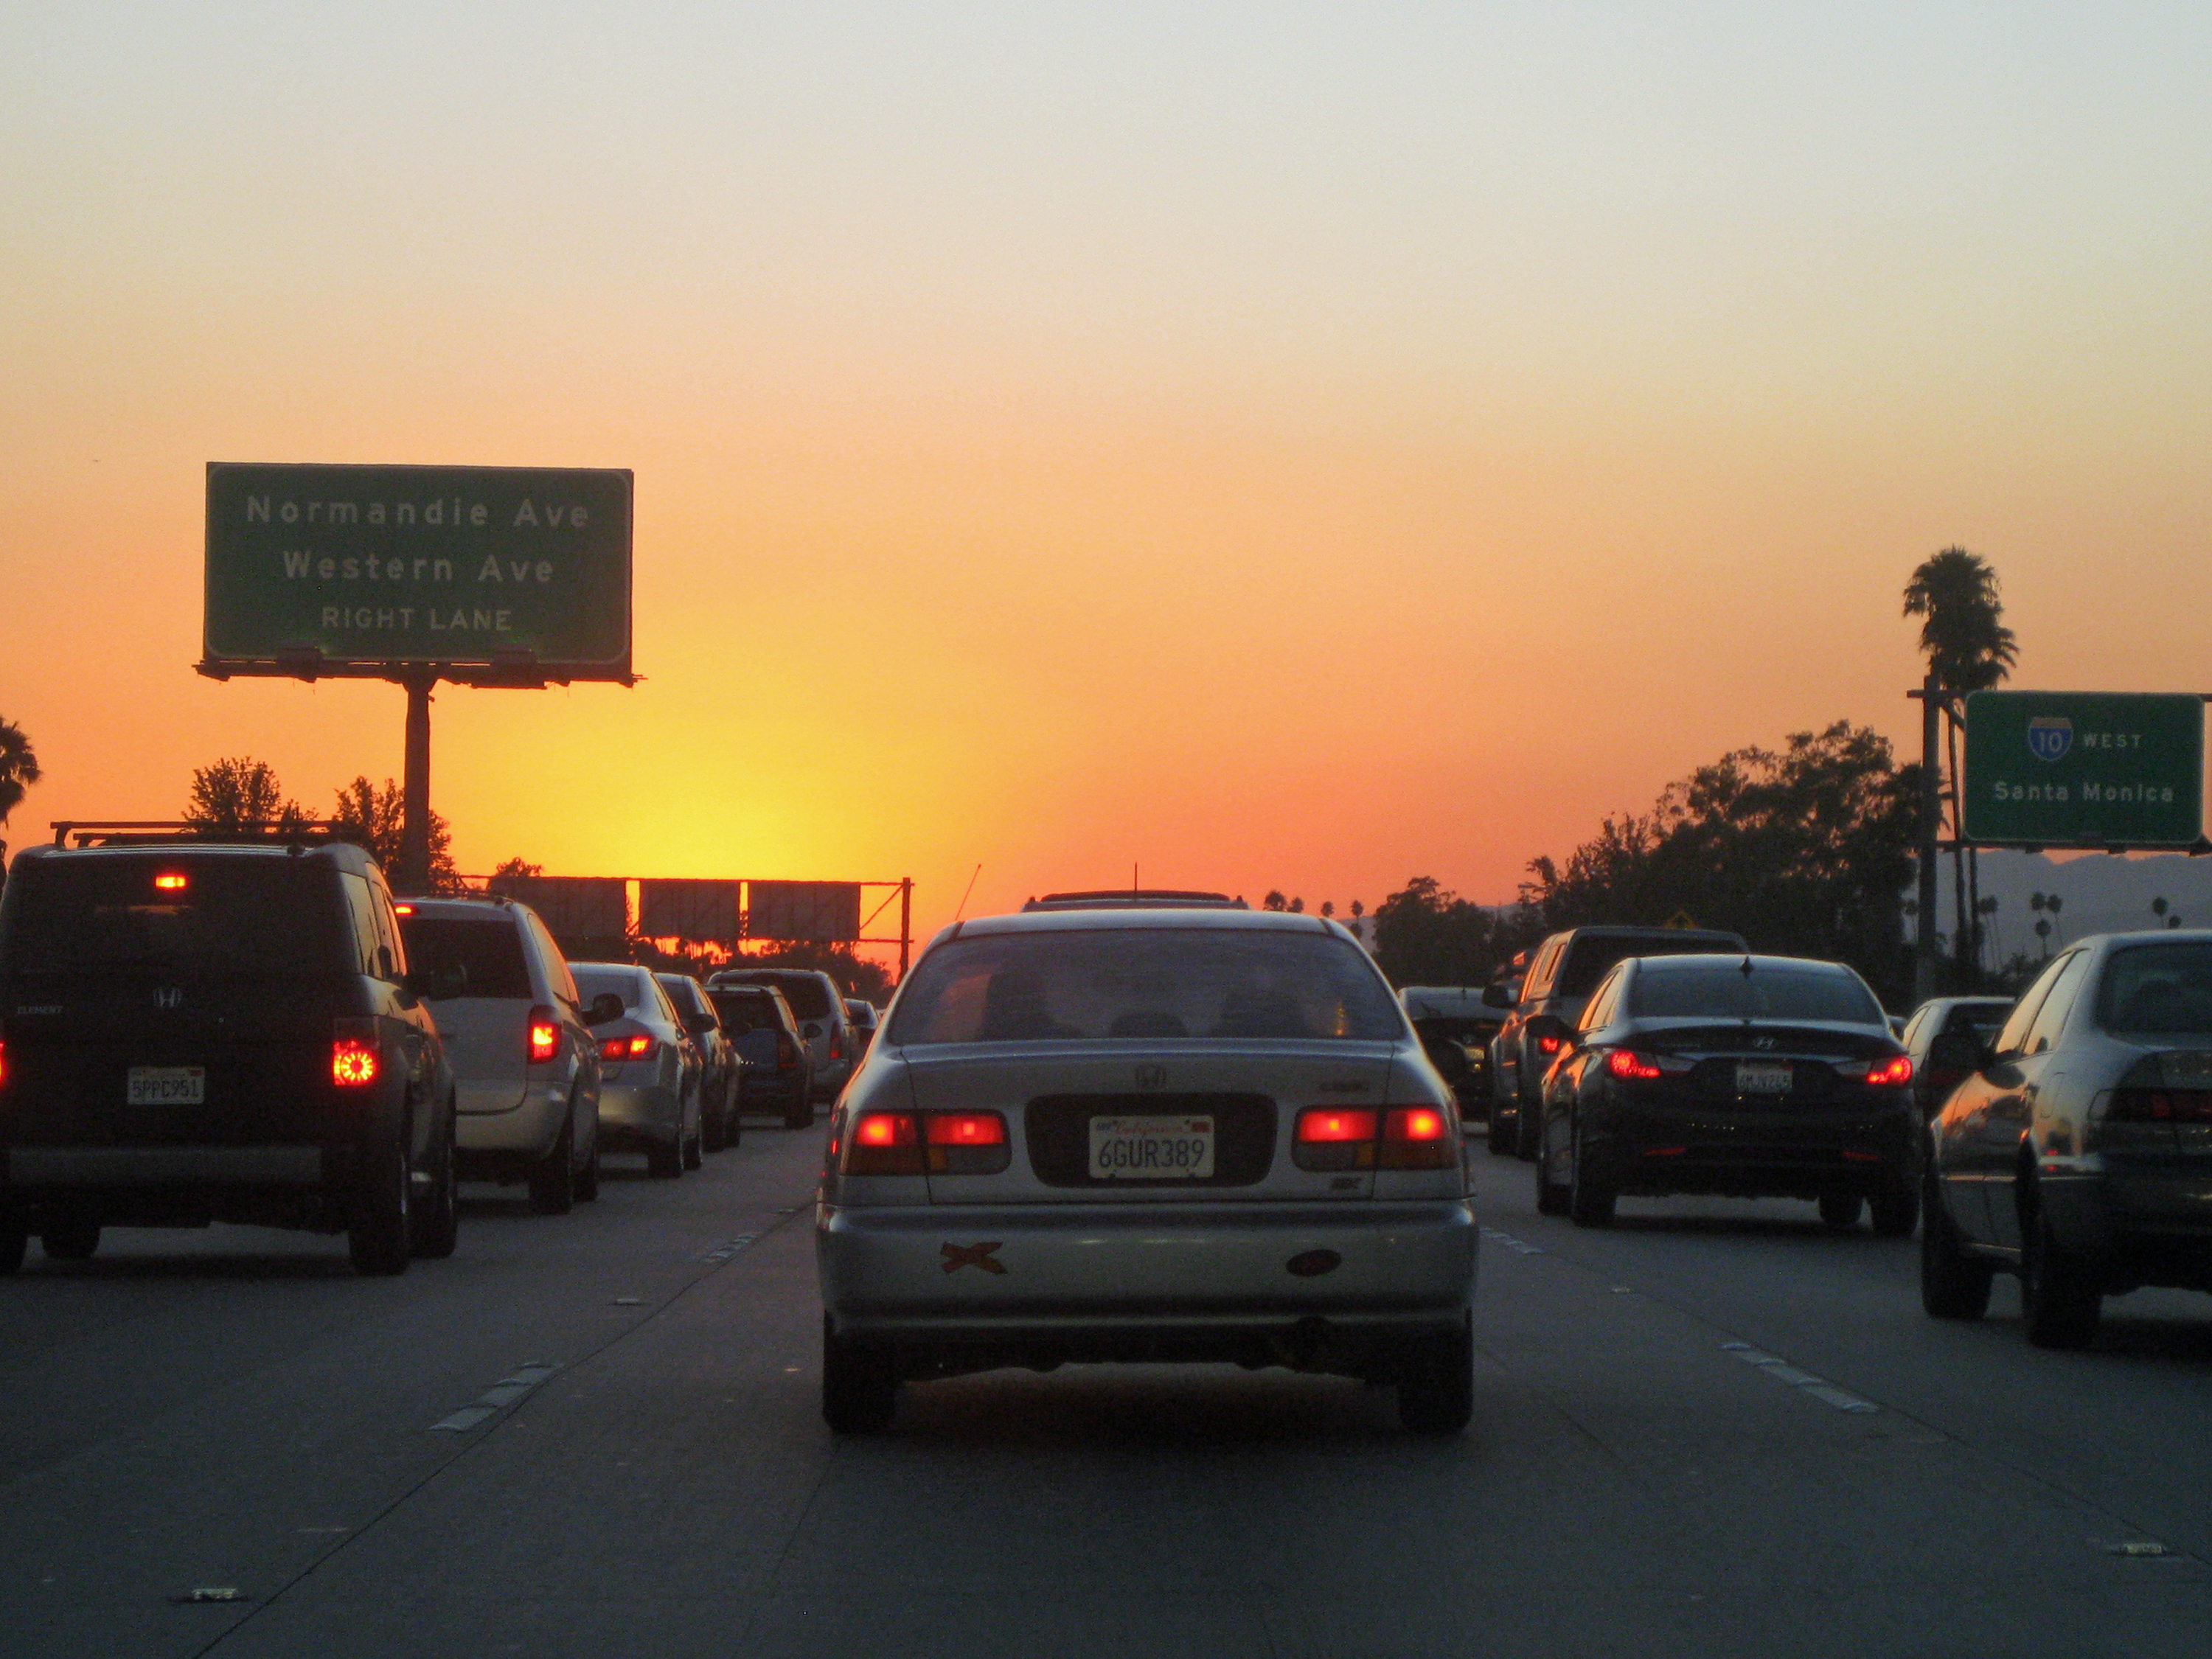 USC study finds most dangerous time and place to drive in L.A.